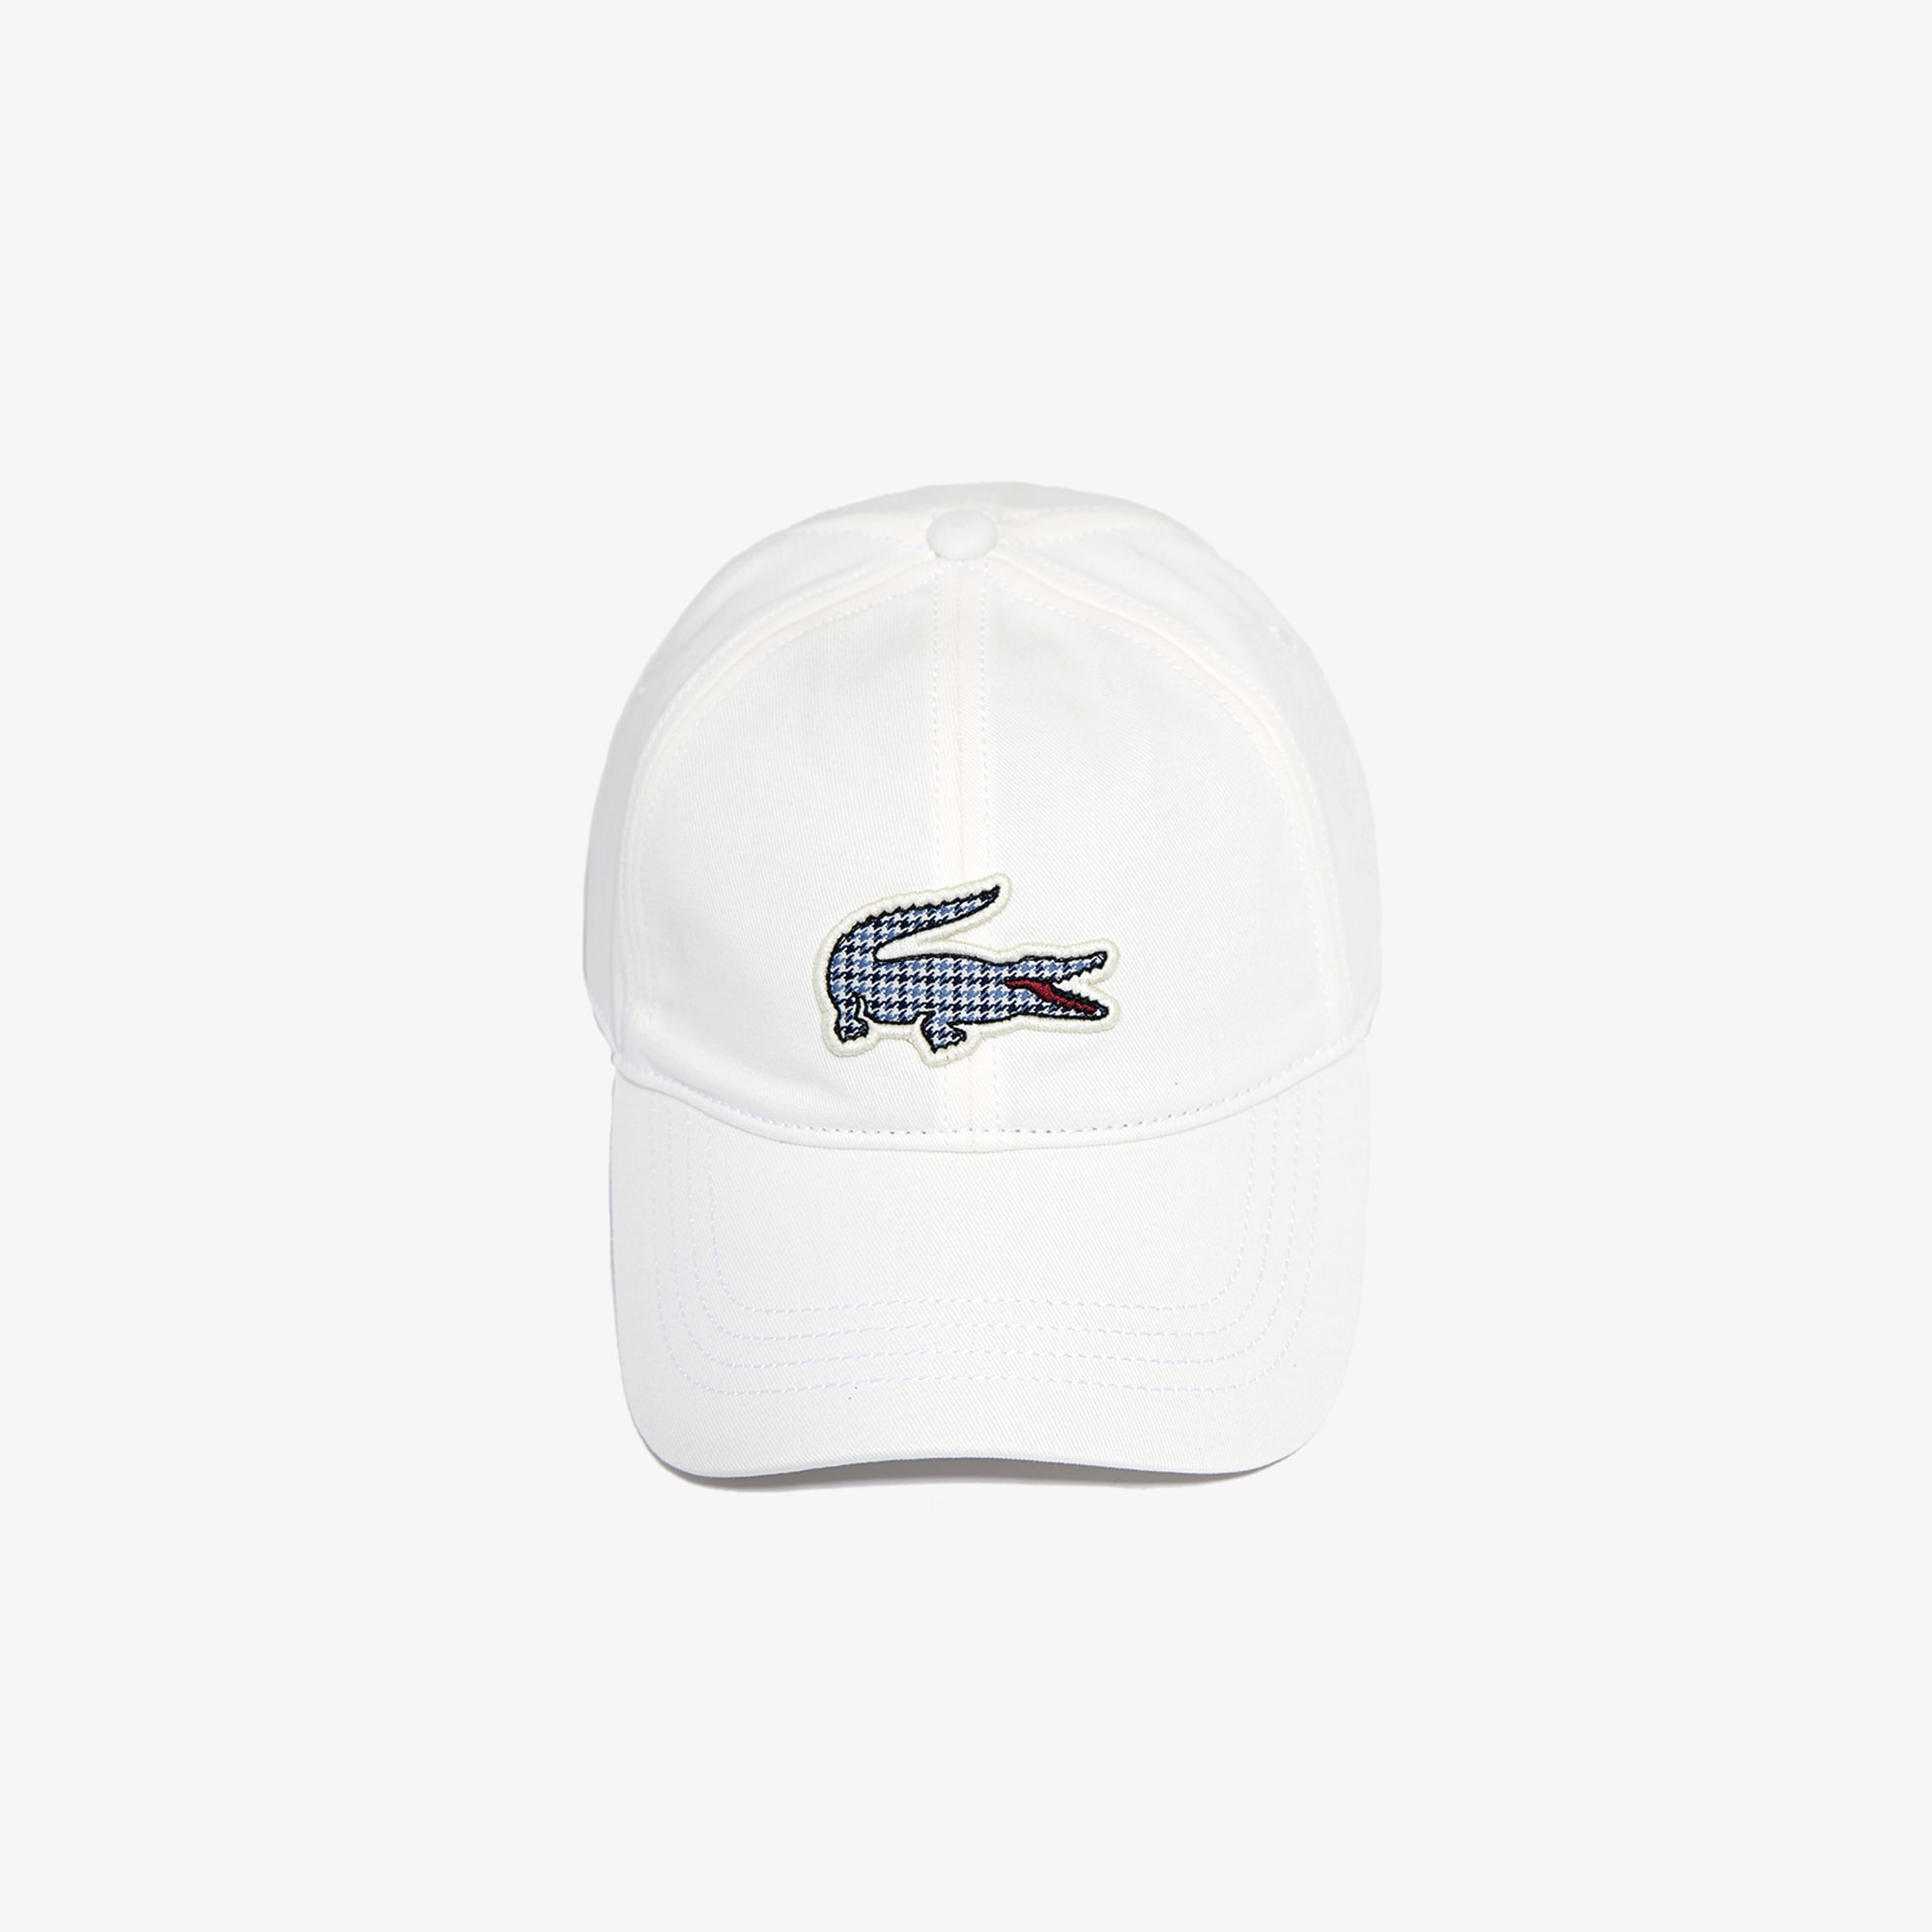 Men's Check Croc Badge Cotton Cap